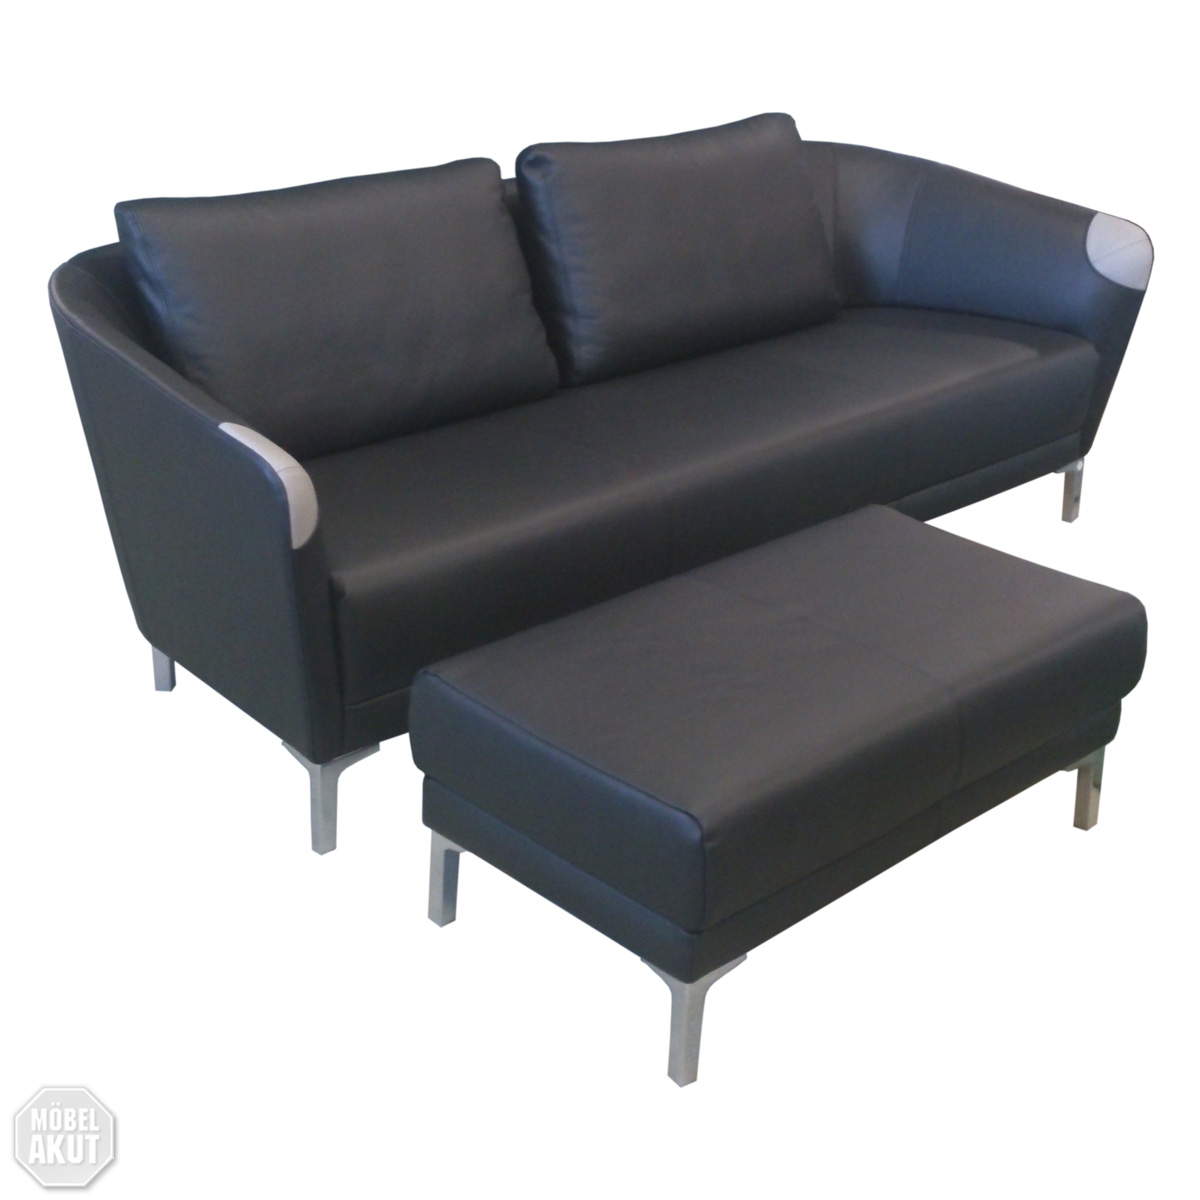 sofa bela 320 rolf benz leder schwarz sob 320 ebay. Black Bedroom Furniture Sets. Home Design Ideas